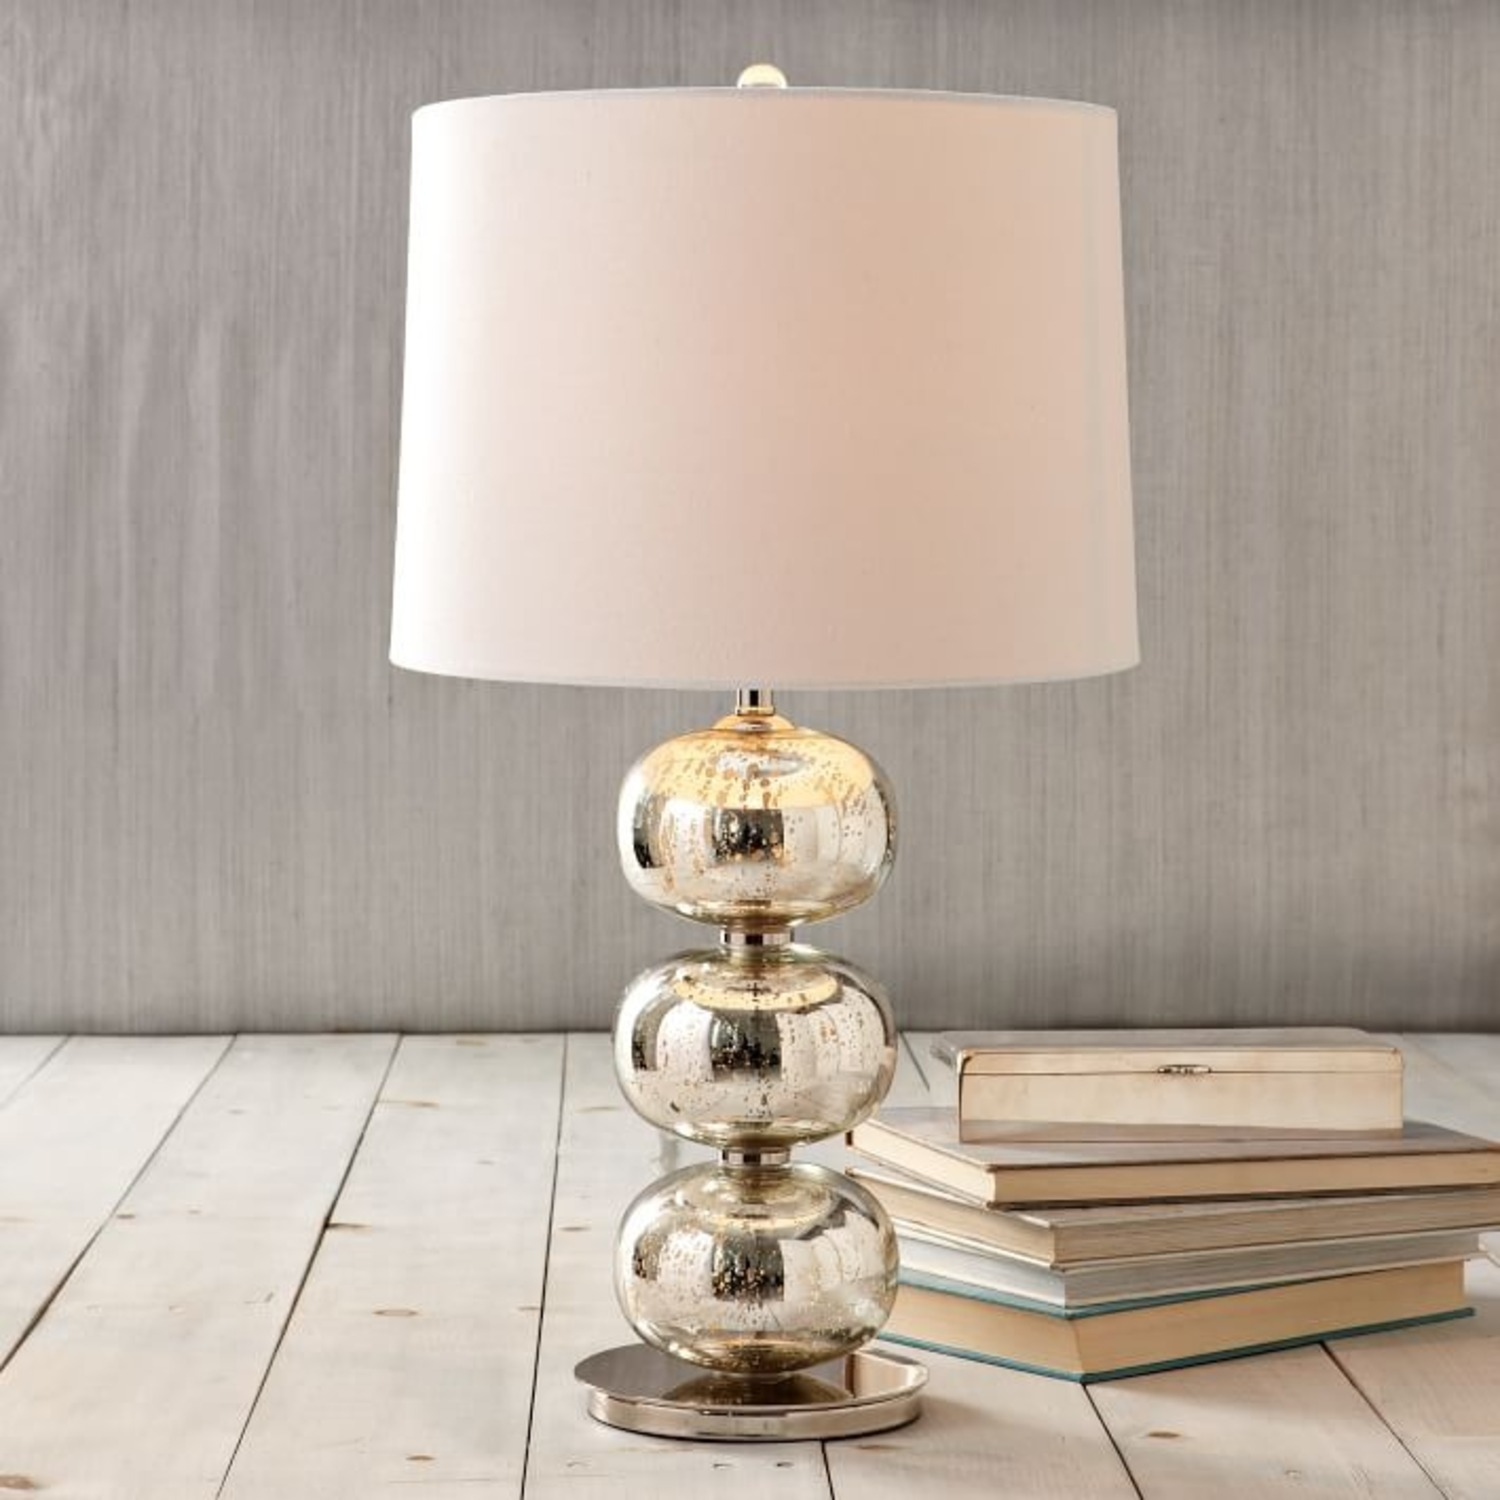 West Elm Abacus Mercury Glass Table Lamp - image-0